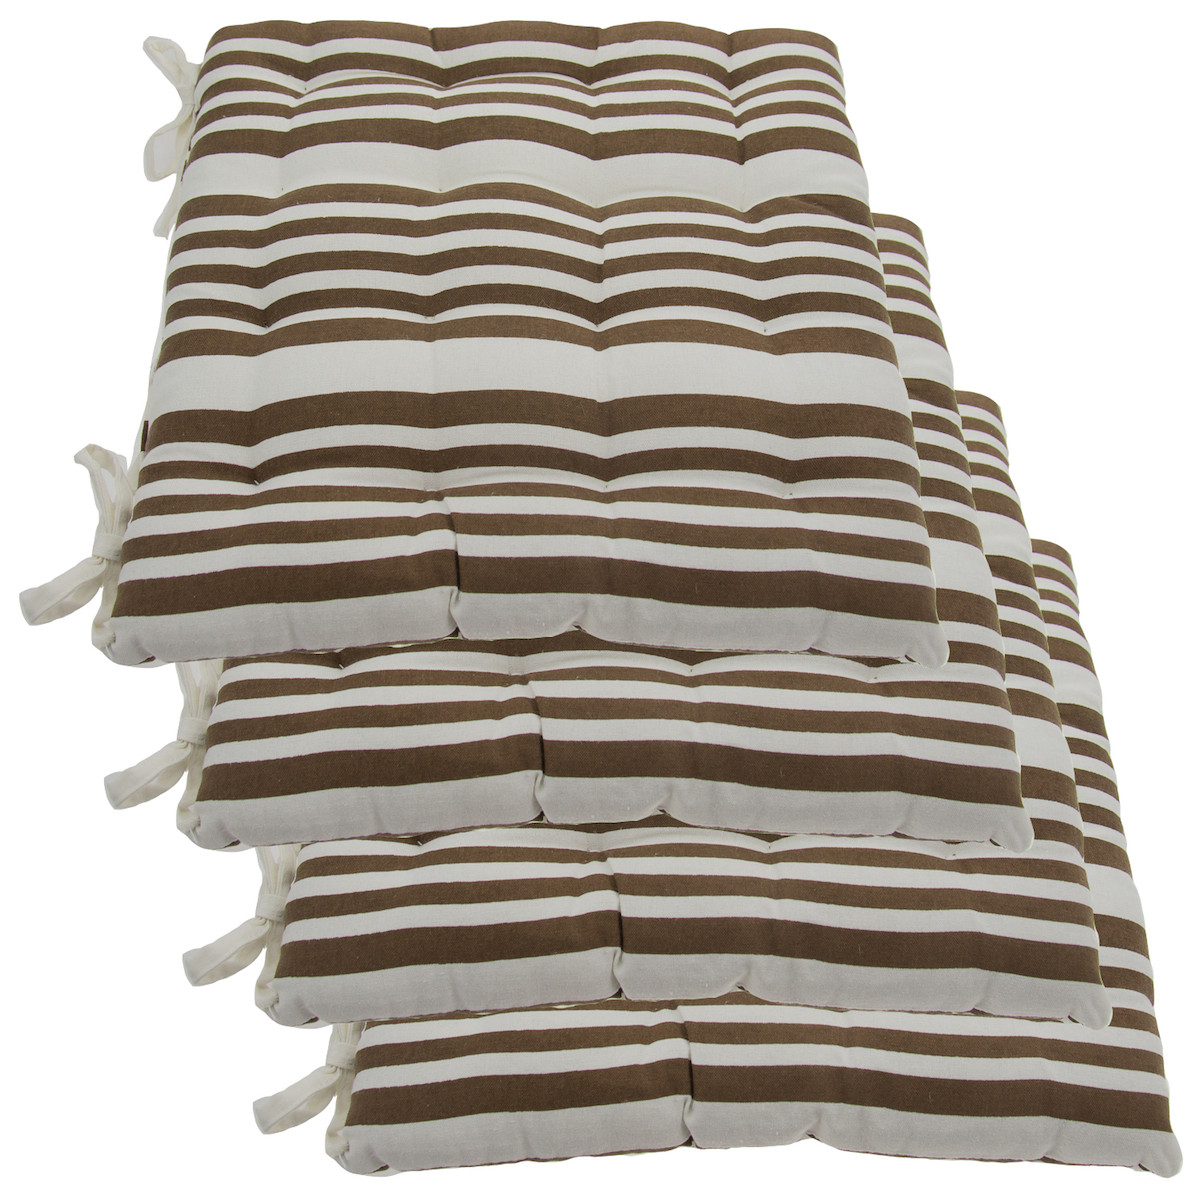 Best ideas about Dining Chair Cushions With Ties . Save or Pin Set 4 Cotton Indoor Reversible Chair Pads & Ties Now.